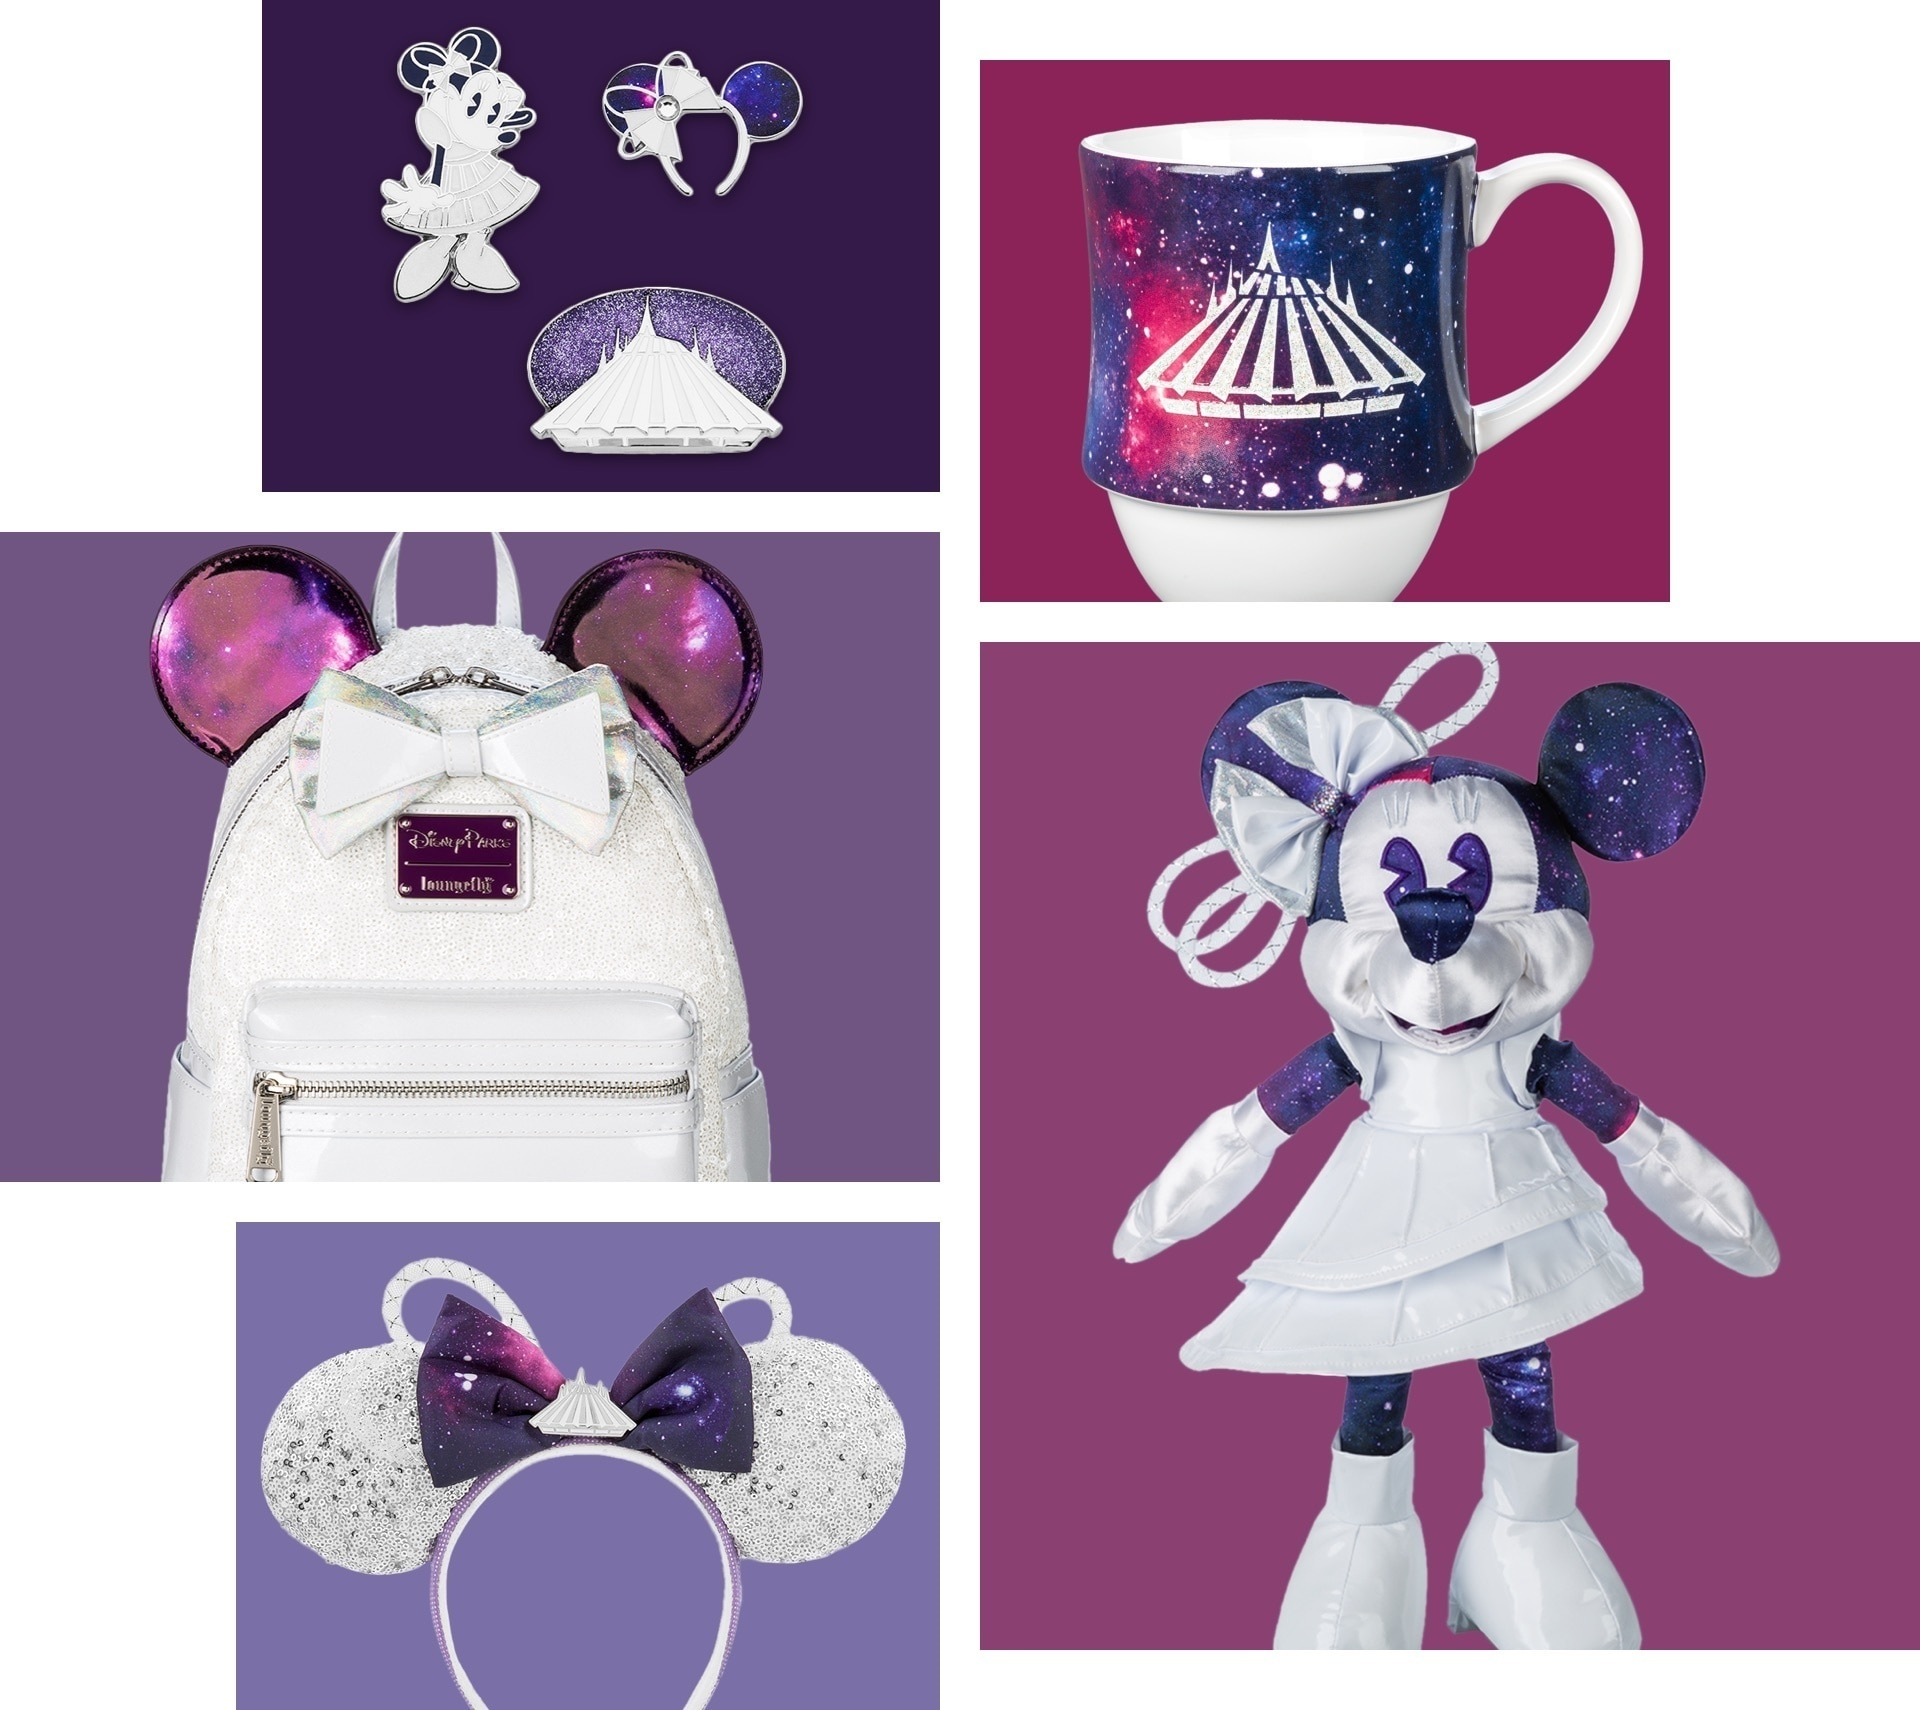 The Minnie Mouse Main Attraction January collection including a Minnie plush, rucksack, mug and pinset, all styled around the Space Mountain attraction at Disney Parks.